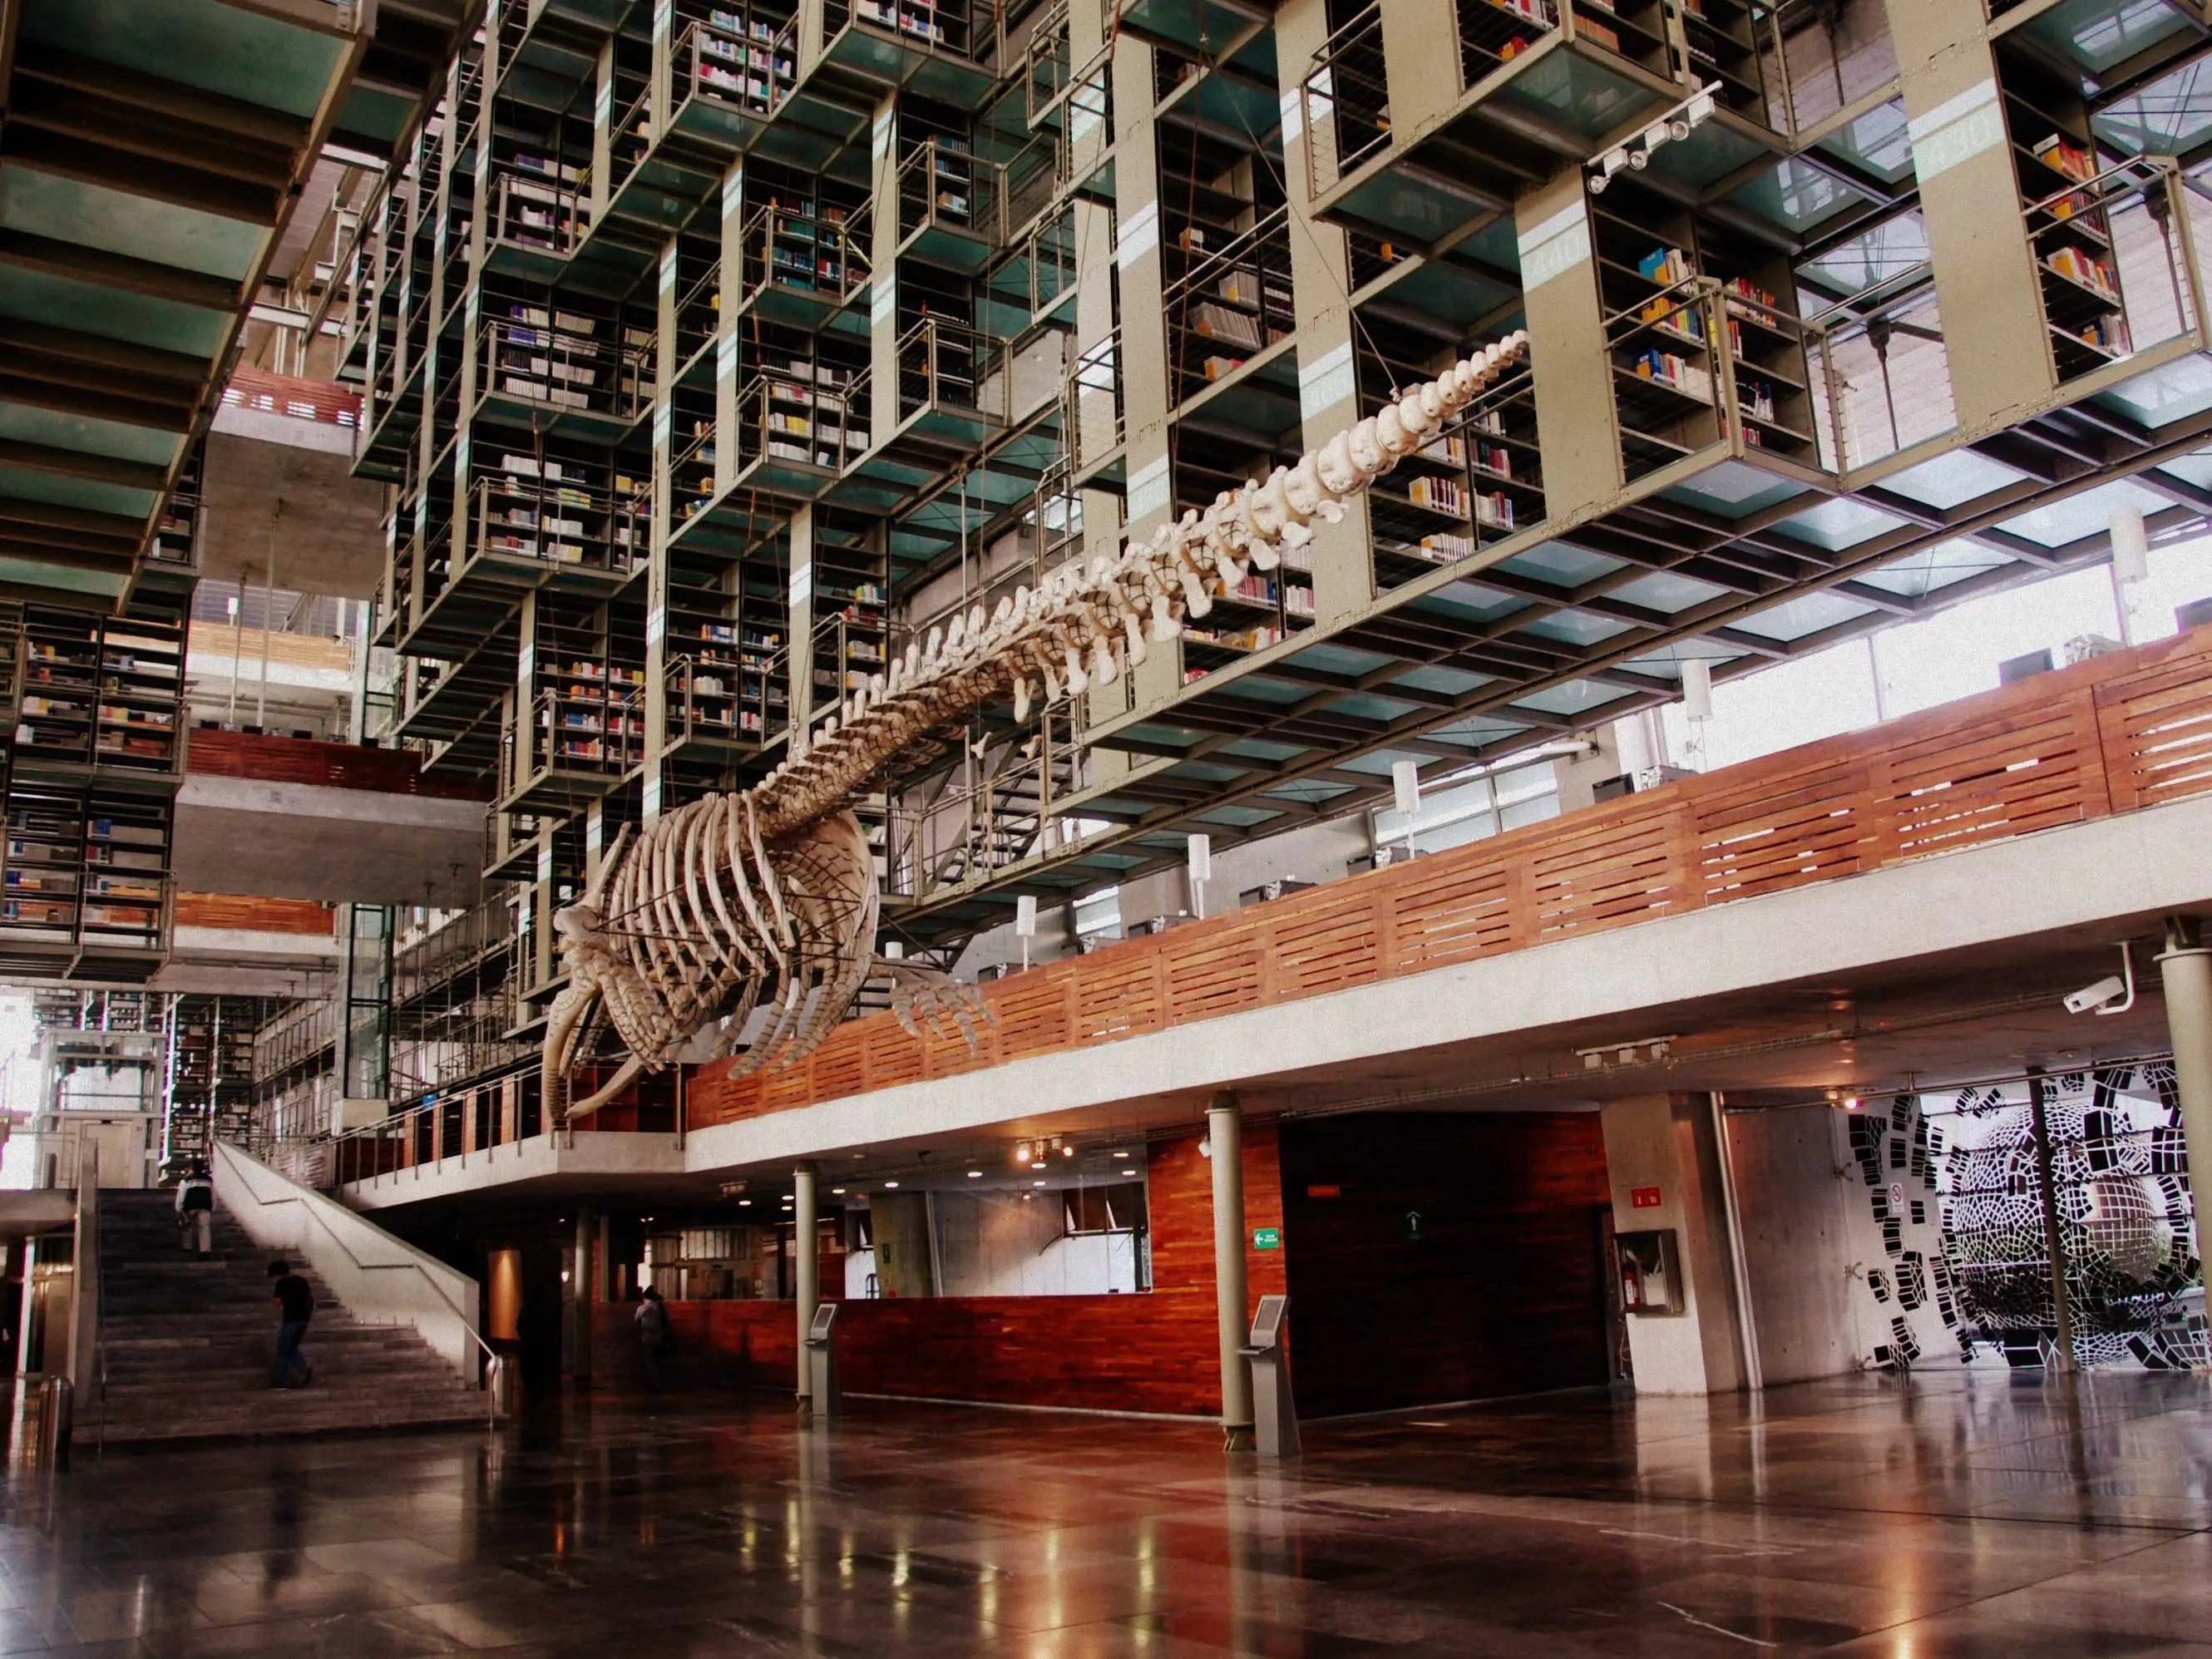 Best Libraries From Around The World - Vasconcelos Library